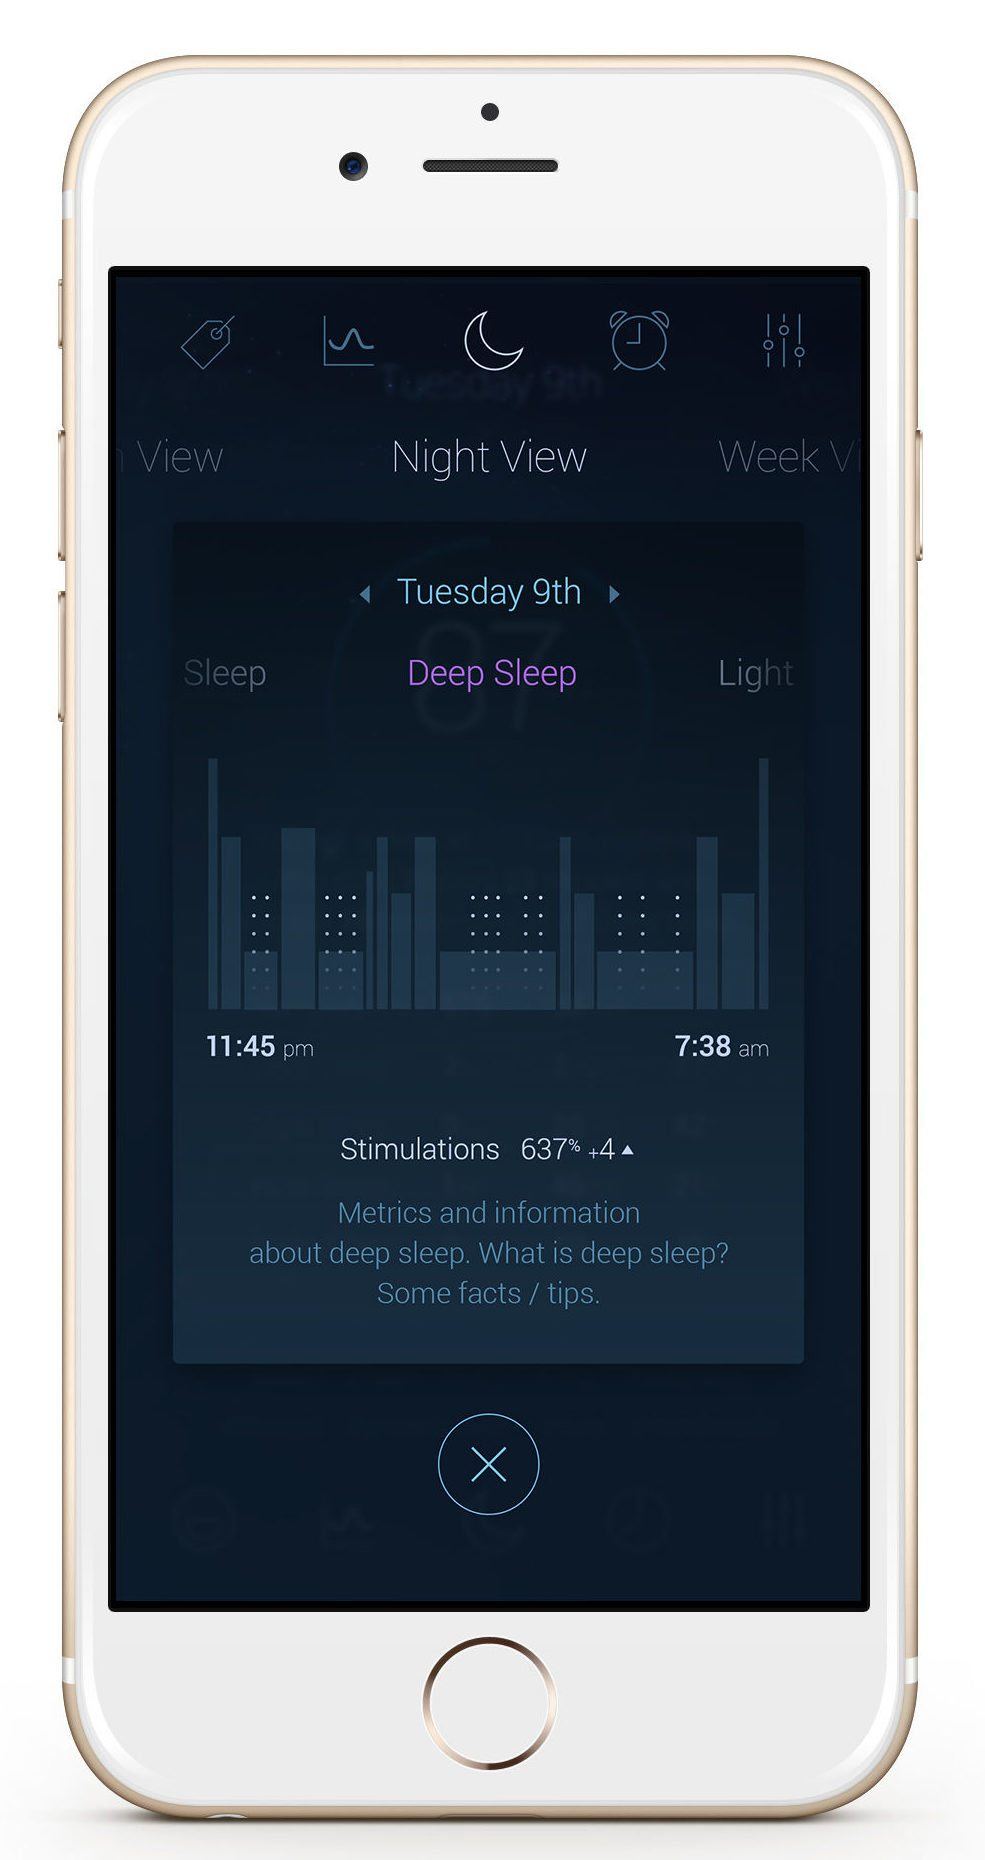 dreem headband monitors brain activity to help you sleep 5 - Dreem headband monitors brain activity to help you sleep